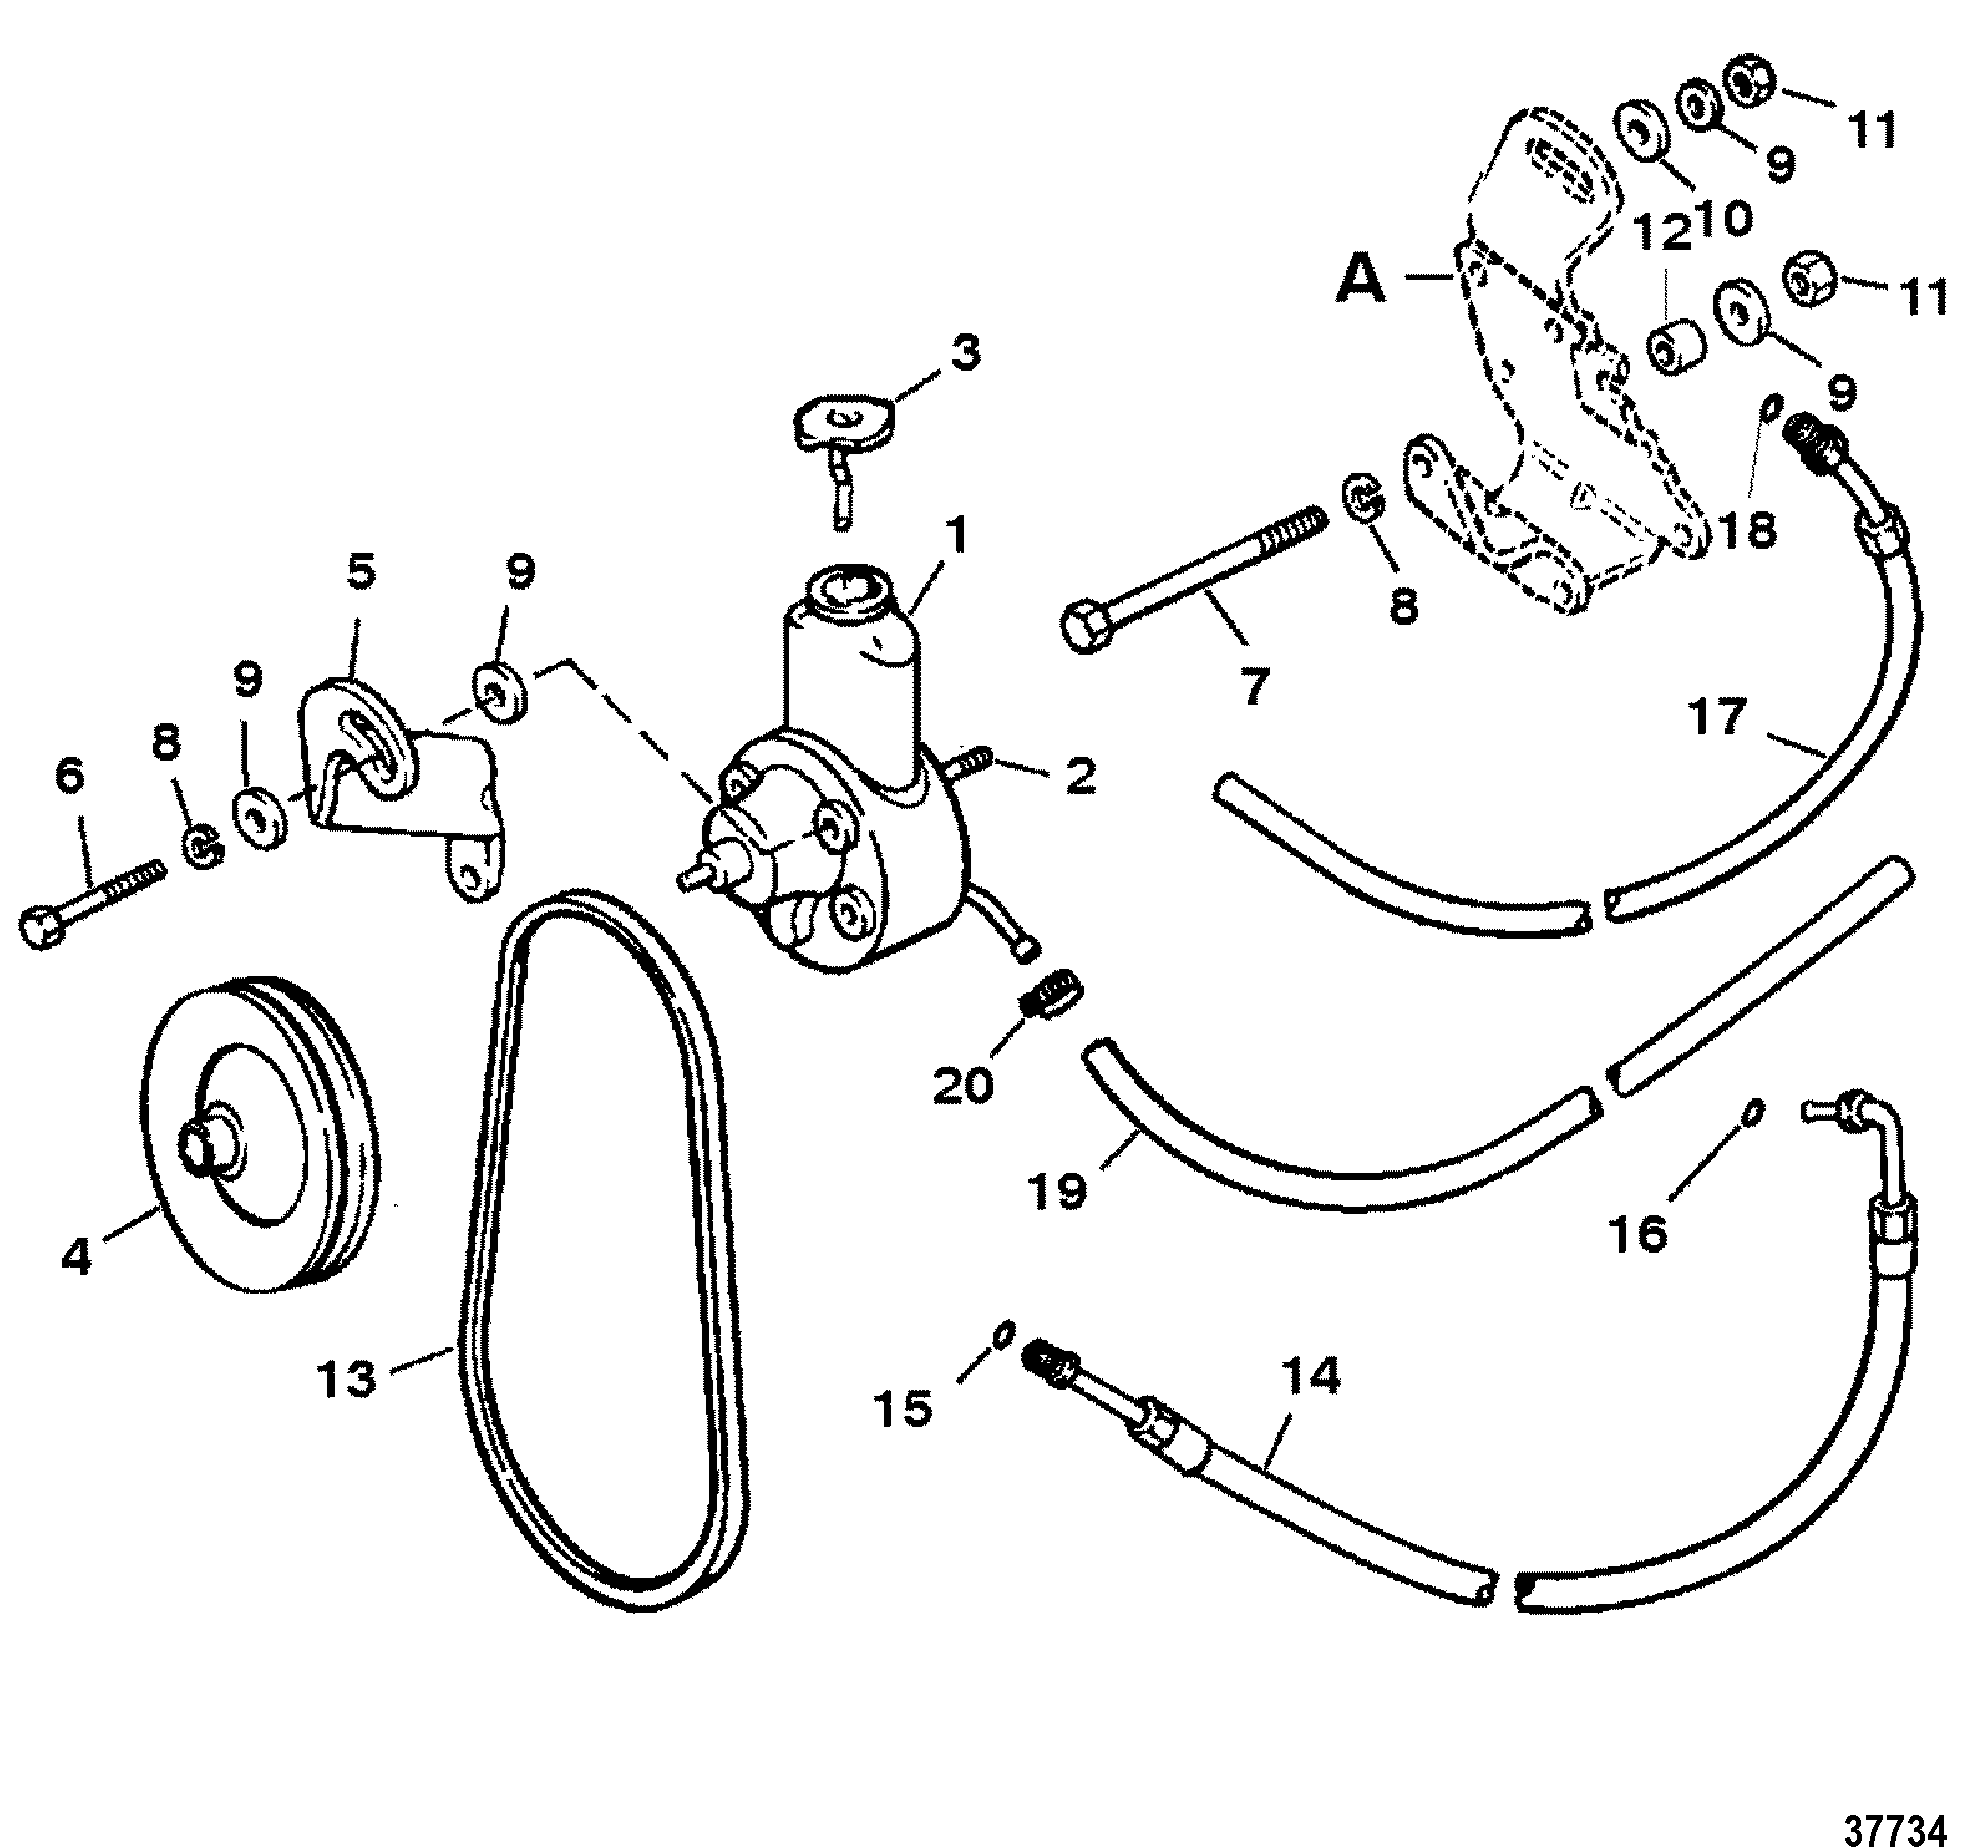 37734 Ignition Interrupter Mercruiser Wiring Diagram on